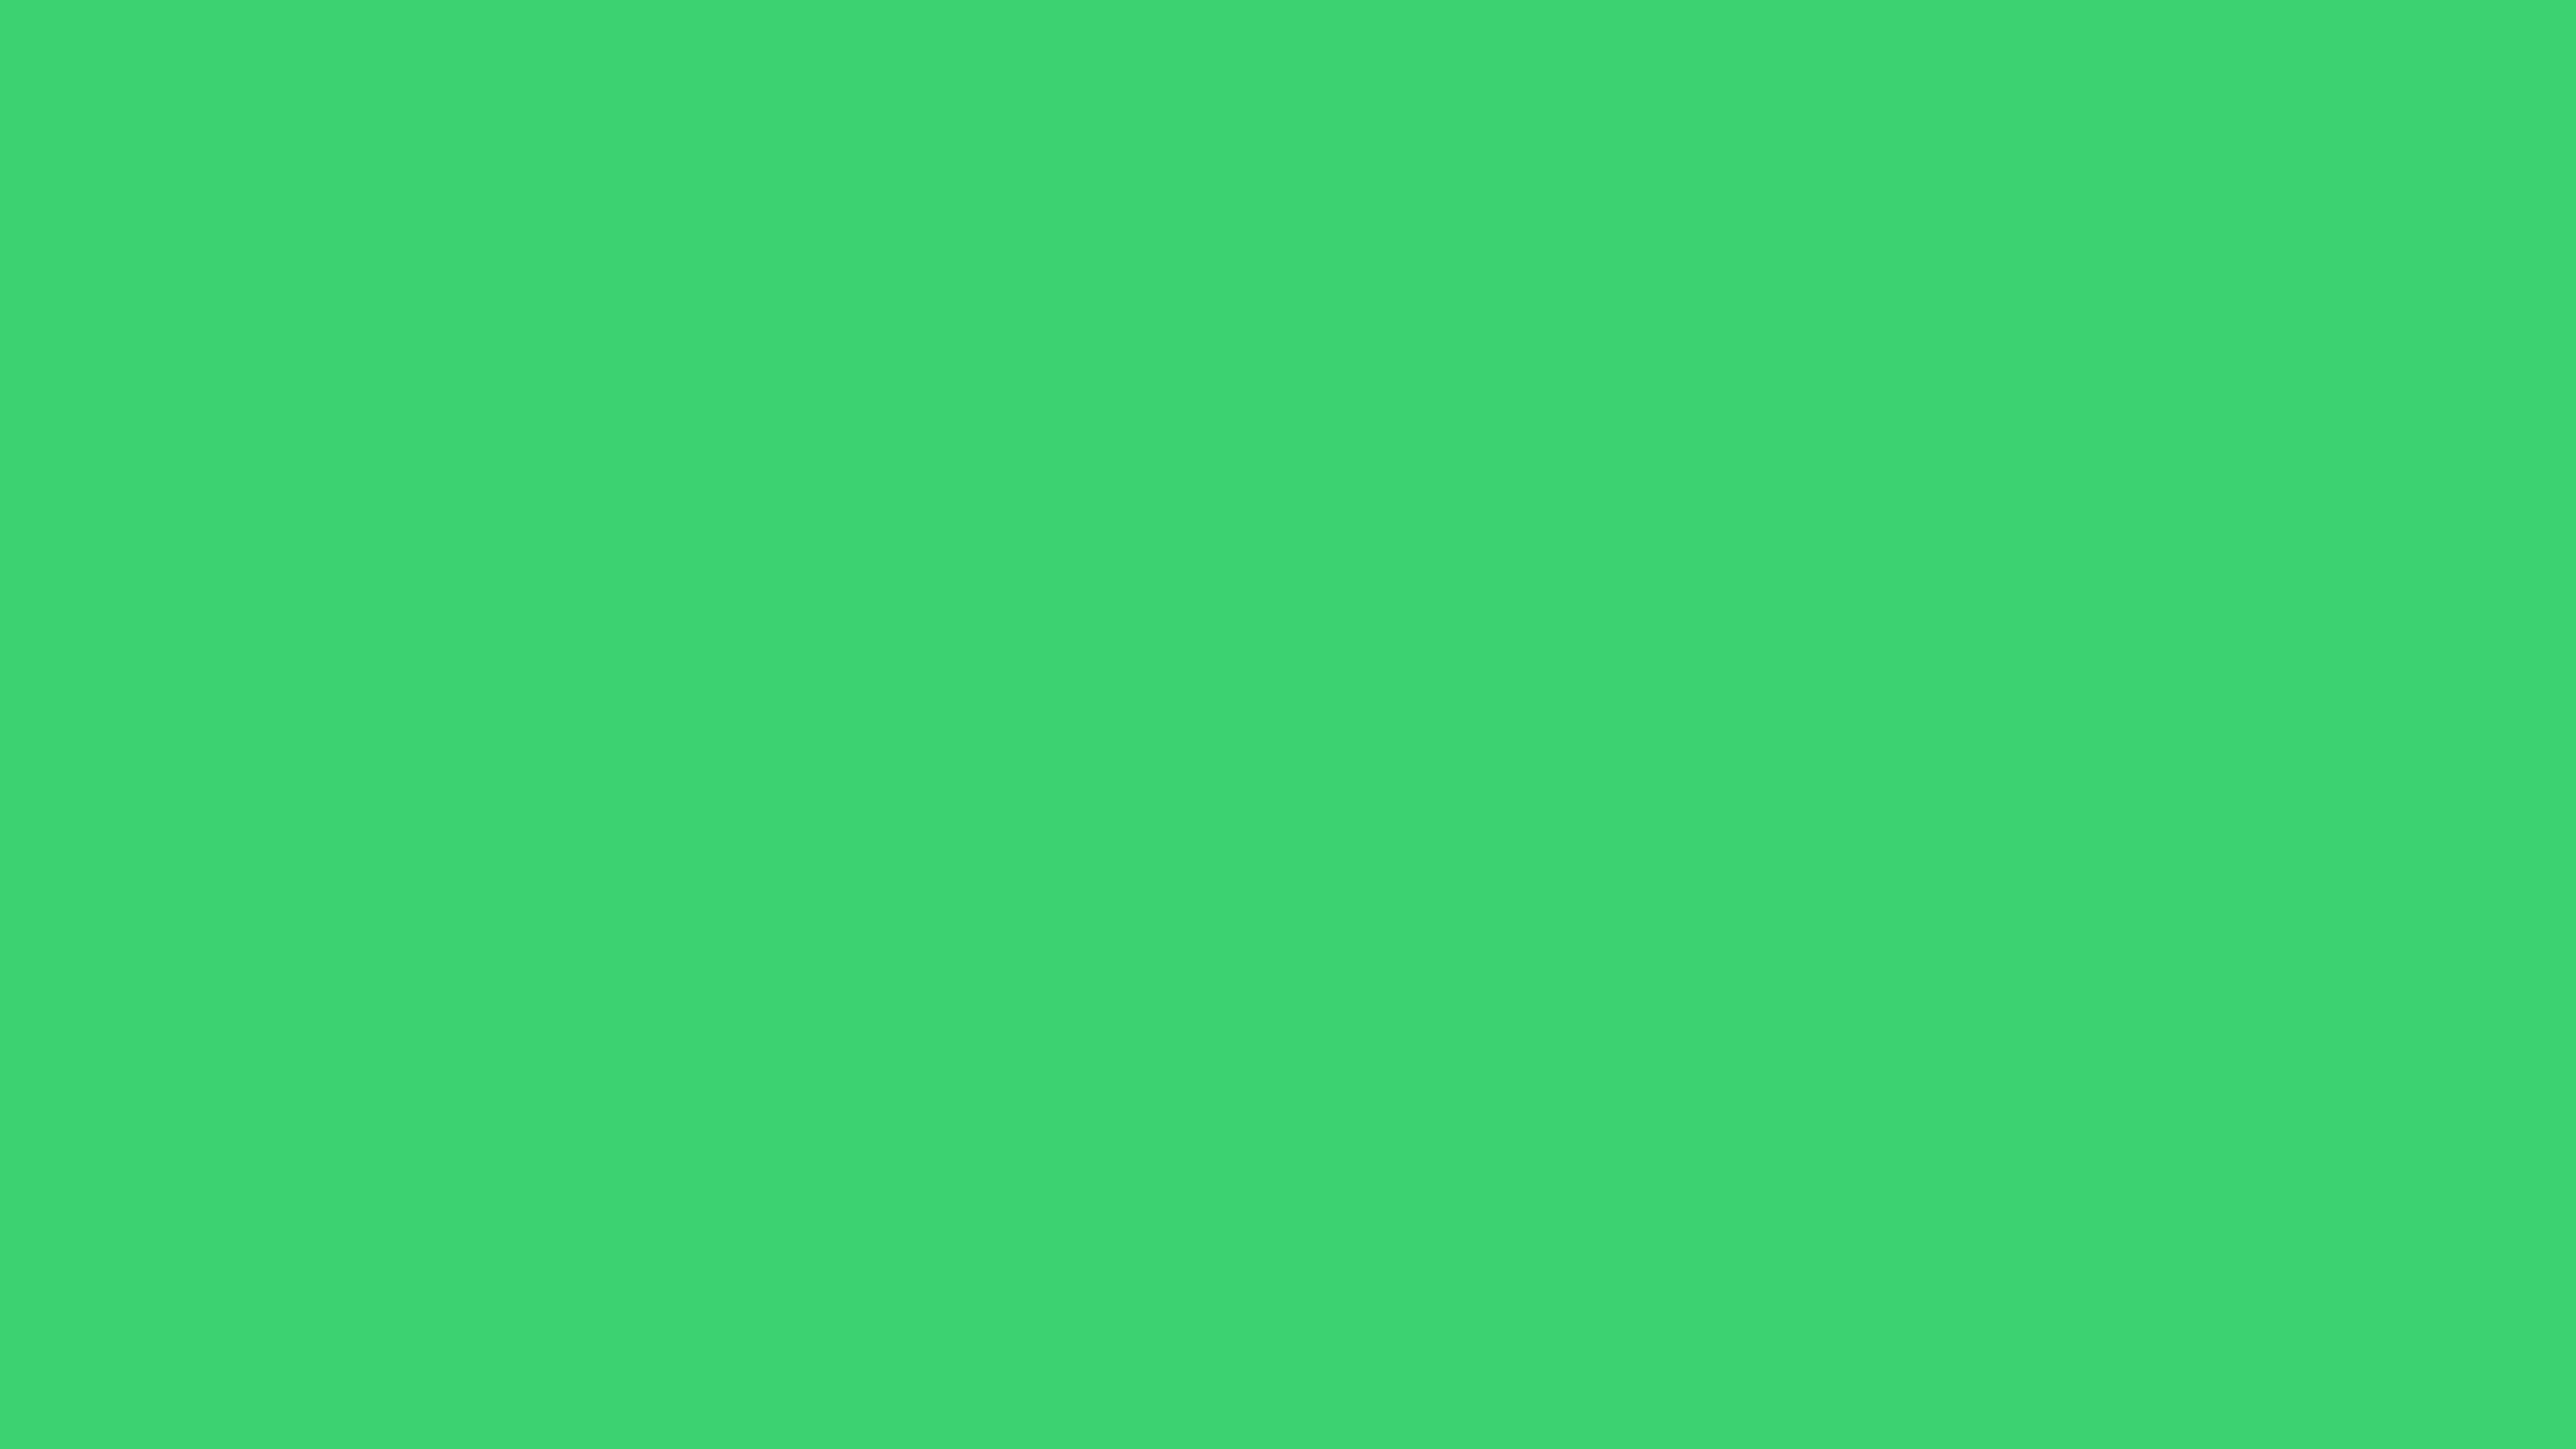 5120x2880 UFO Green Solid Color Background